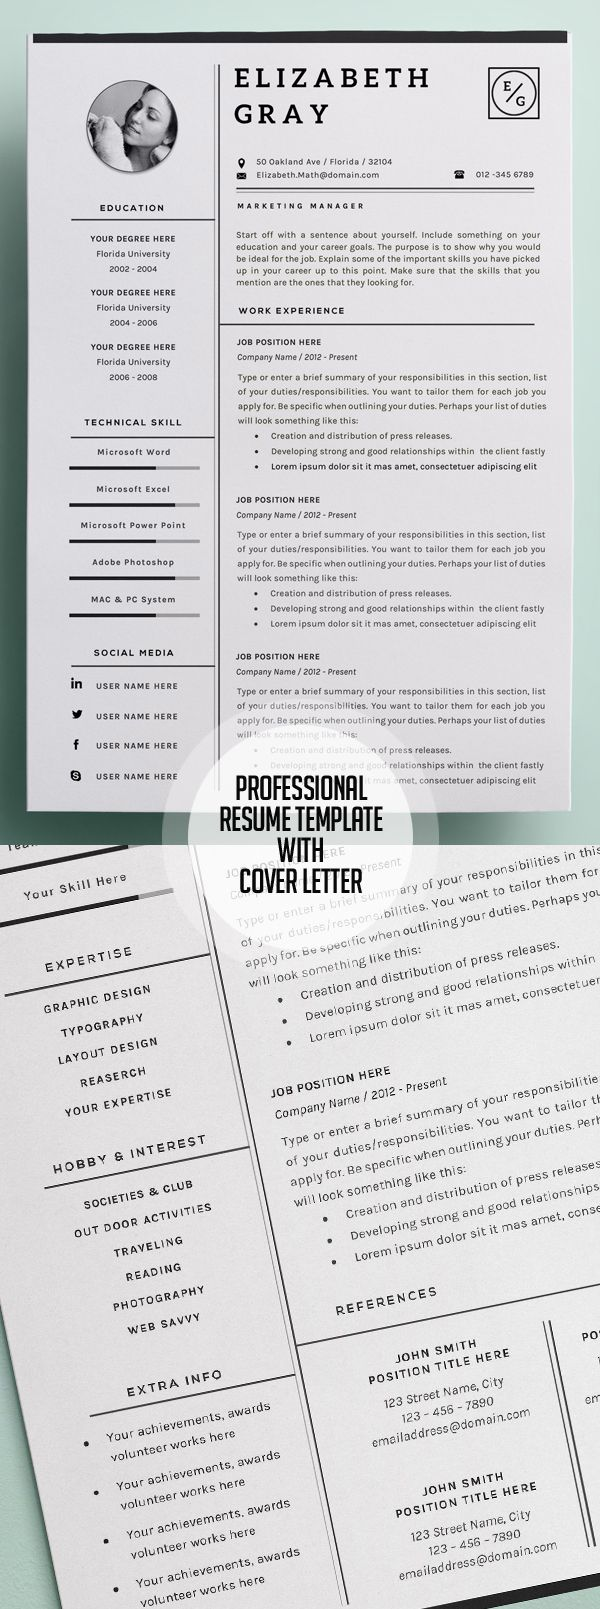 Opposenewapstandardsus  Stunning  Resume Ideas On Pinterest  Resume Resume Templates And  With Magnificent Professional And Modern Resume Template With Page Cover Cvtemplate With Enchanting Customer Service Resume Template Also Accounting Resume Examples In Addition How To Make A Resume With No Work Experience And Medical Assistant Resume Sample As Well As Teaching Resumes Additionally Skills And Abilities For Resume From Pinterestcom With Opposenewapstandardsus  Magnificent  Resume Ideas On Pinterest  Resume Resume Templates And  With Enchanting Professional And Modern Resume Template With Page Cover Cvtemplate And Stunning Customer Service Resume Template Also Accounting Resume Examples In Addition How To Make A Resume With No Work Experience From Pinterestcom